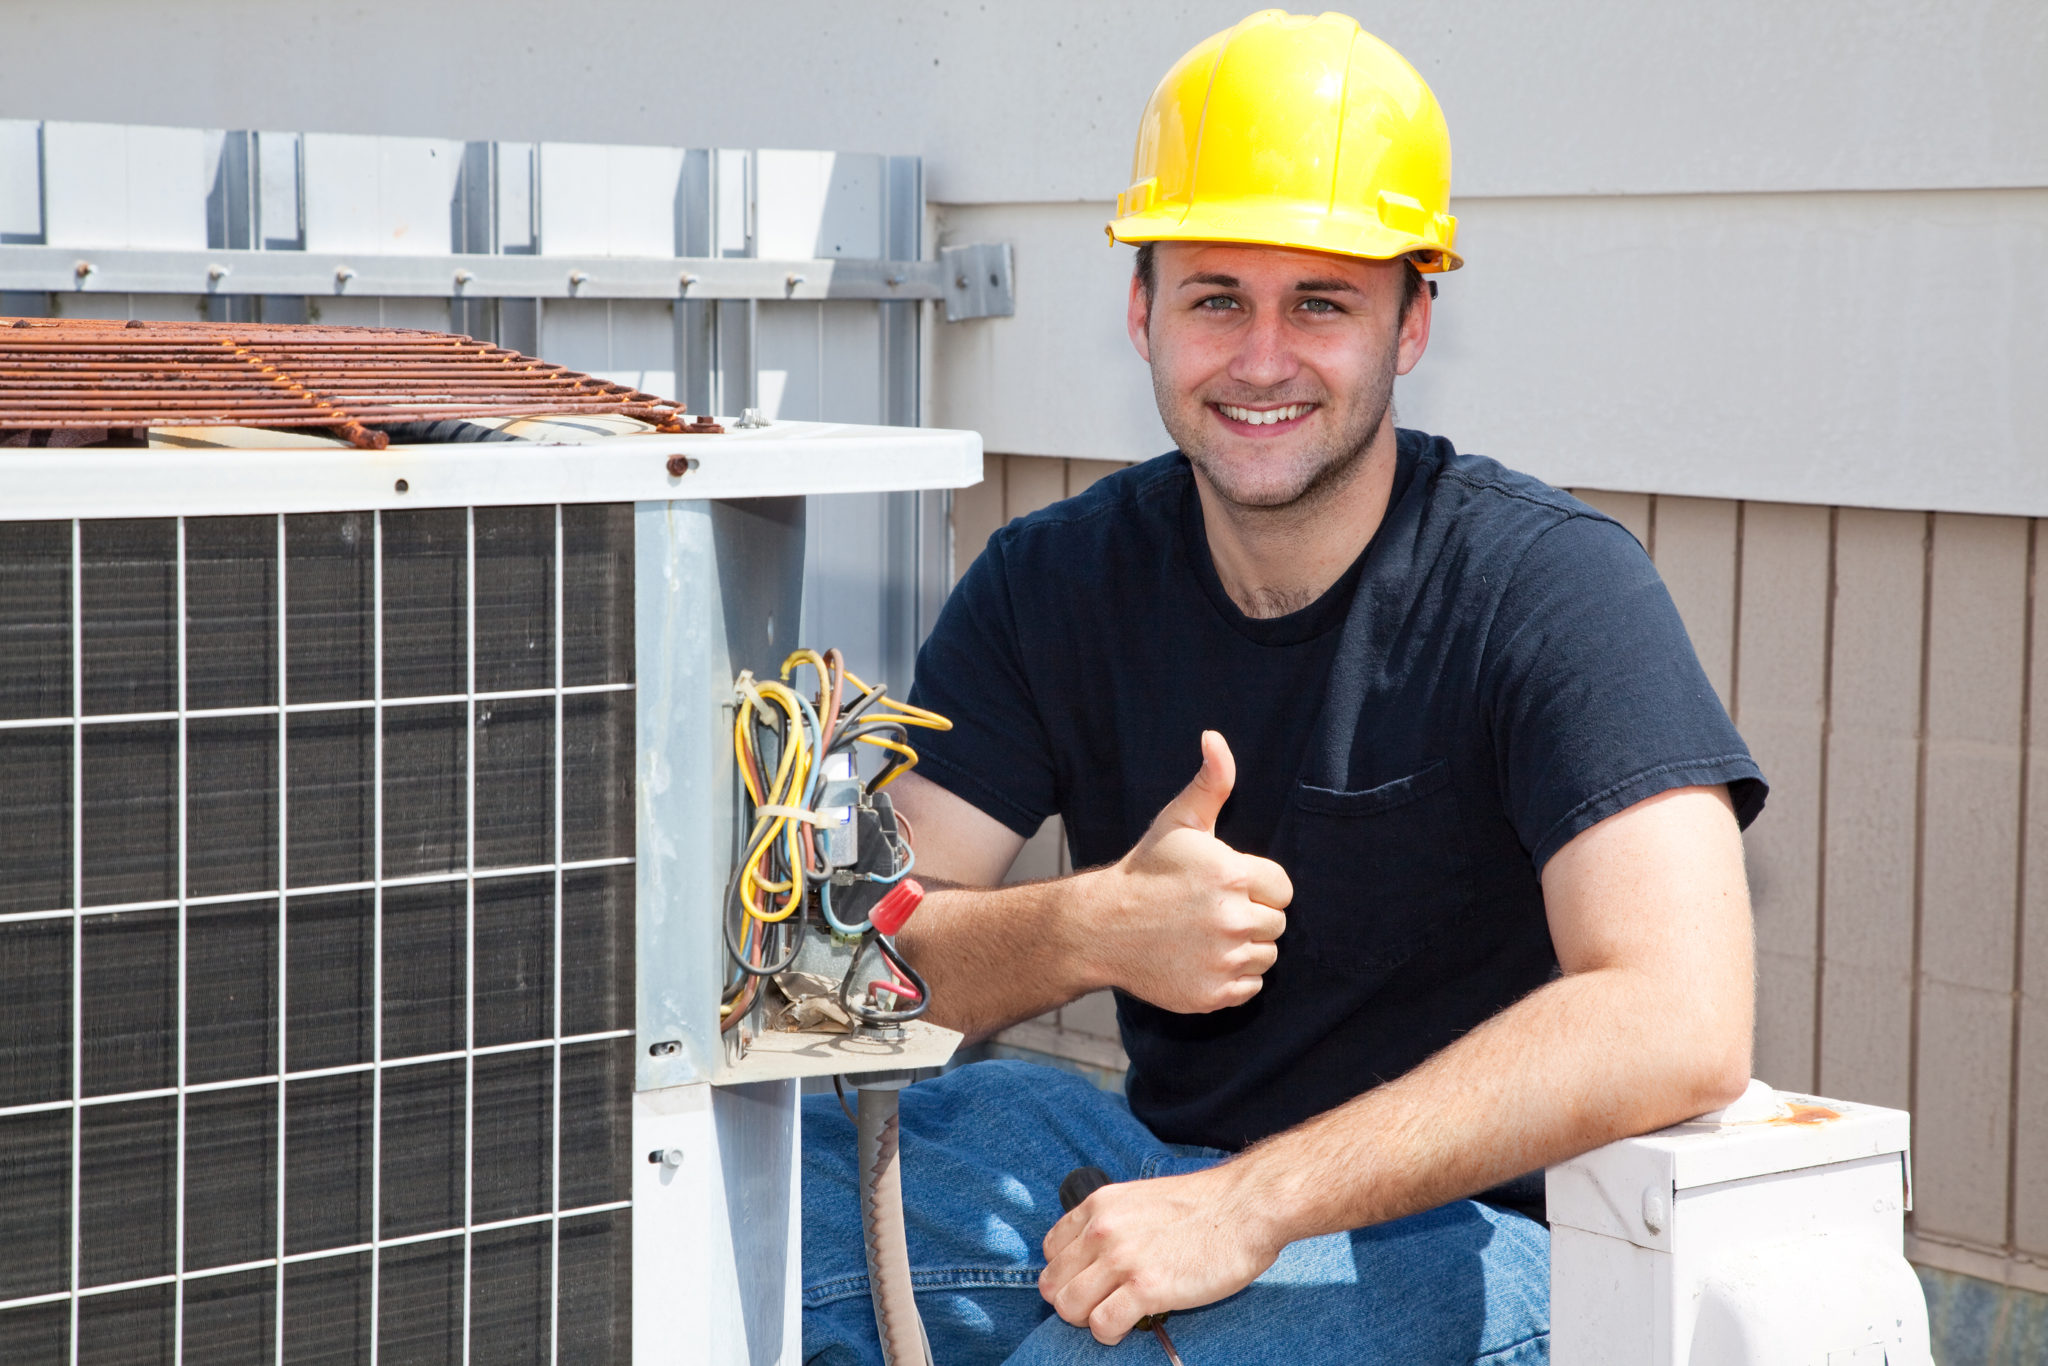 bigstock-Air-conditioning-repairman-wor-11990126